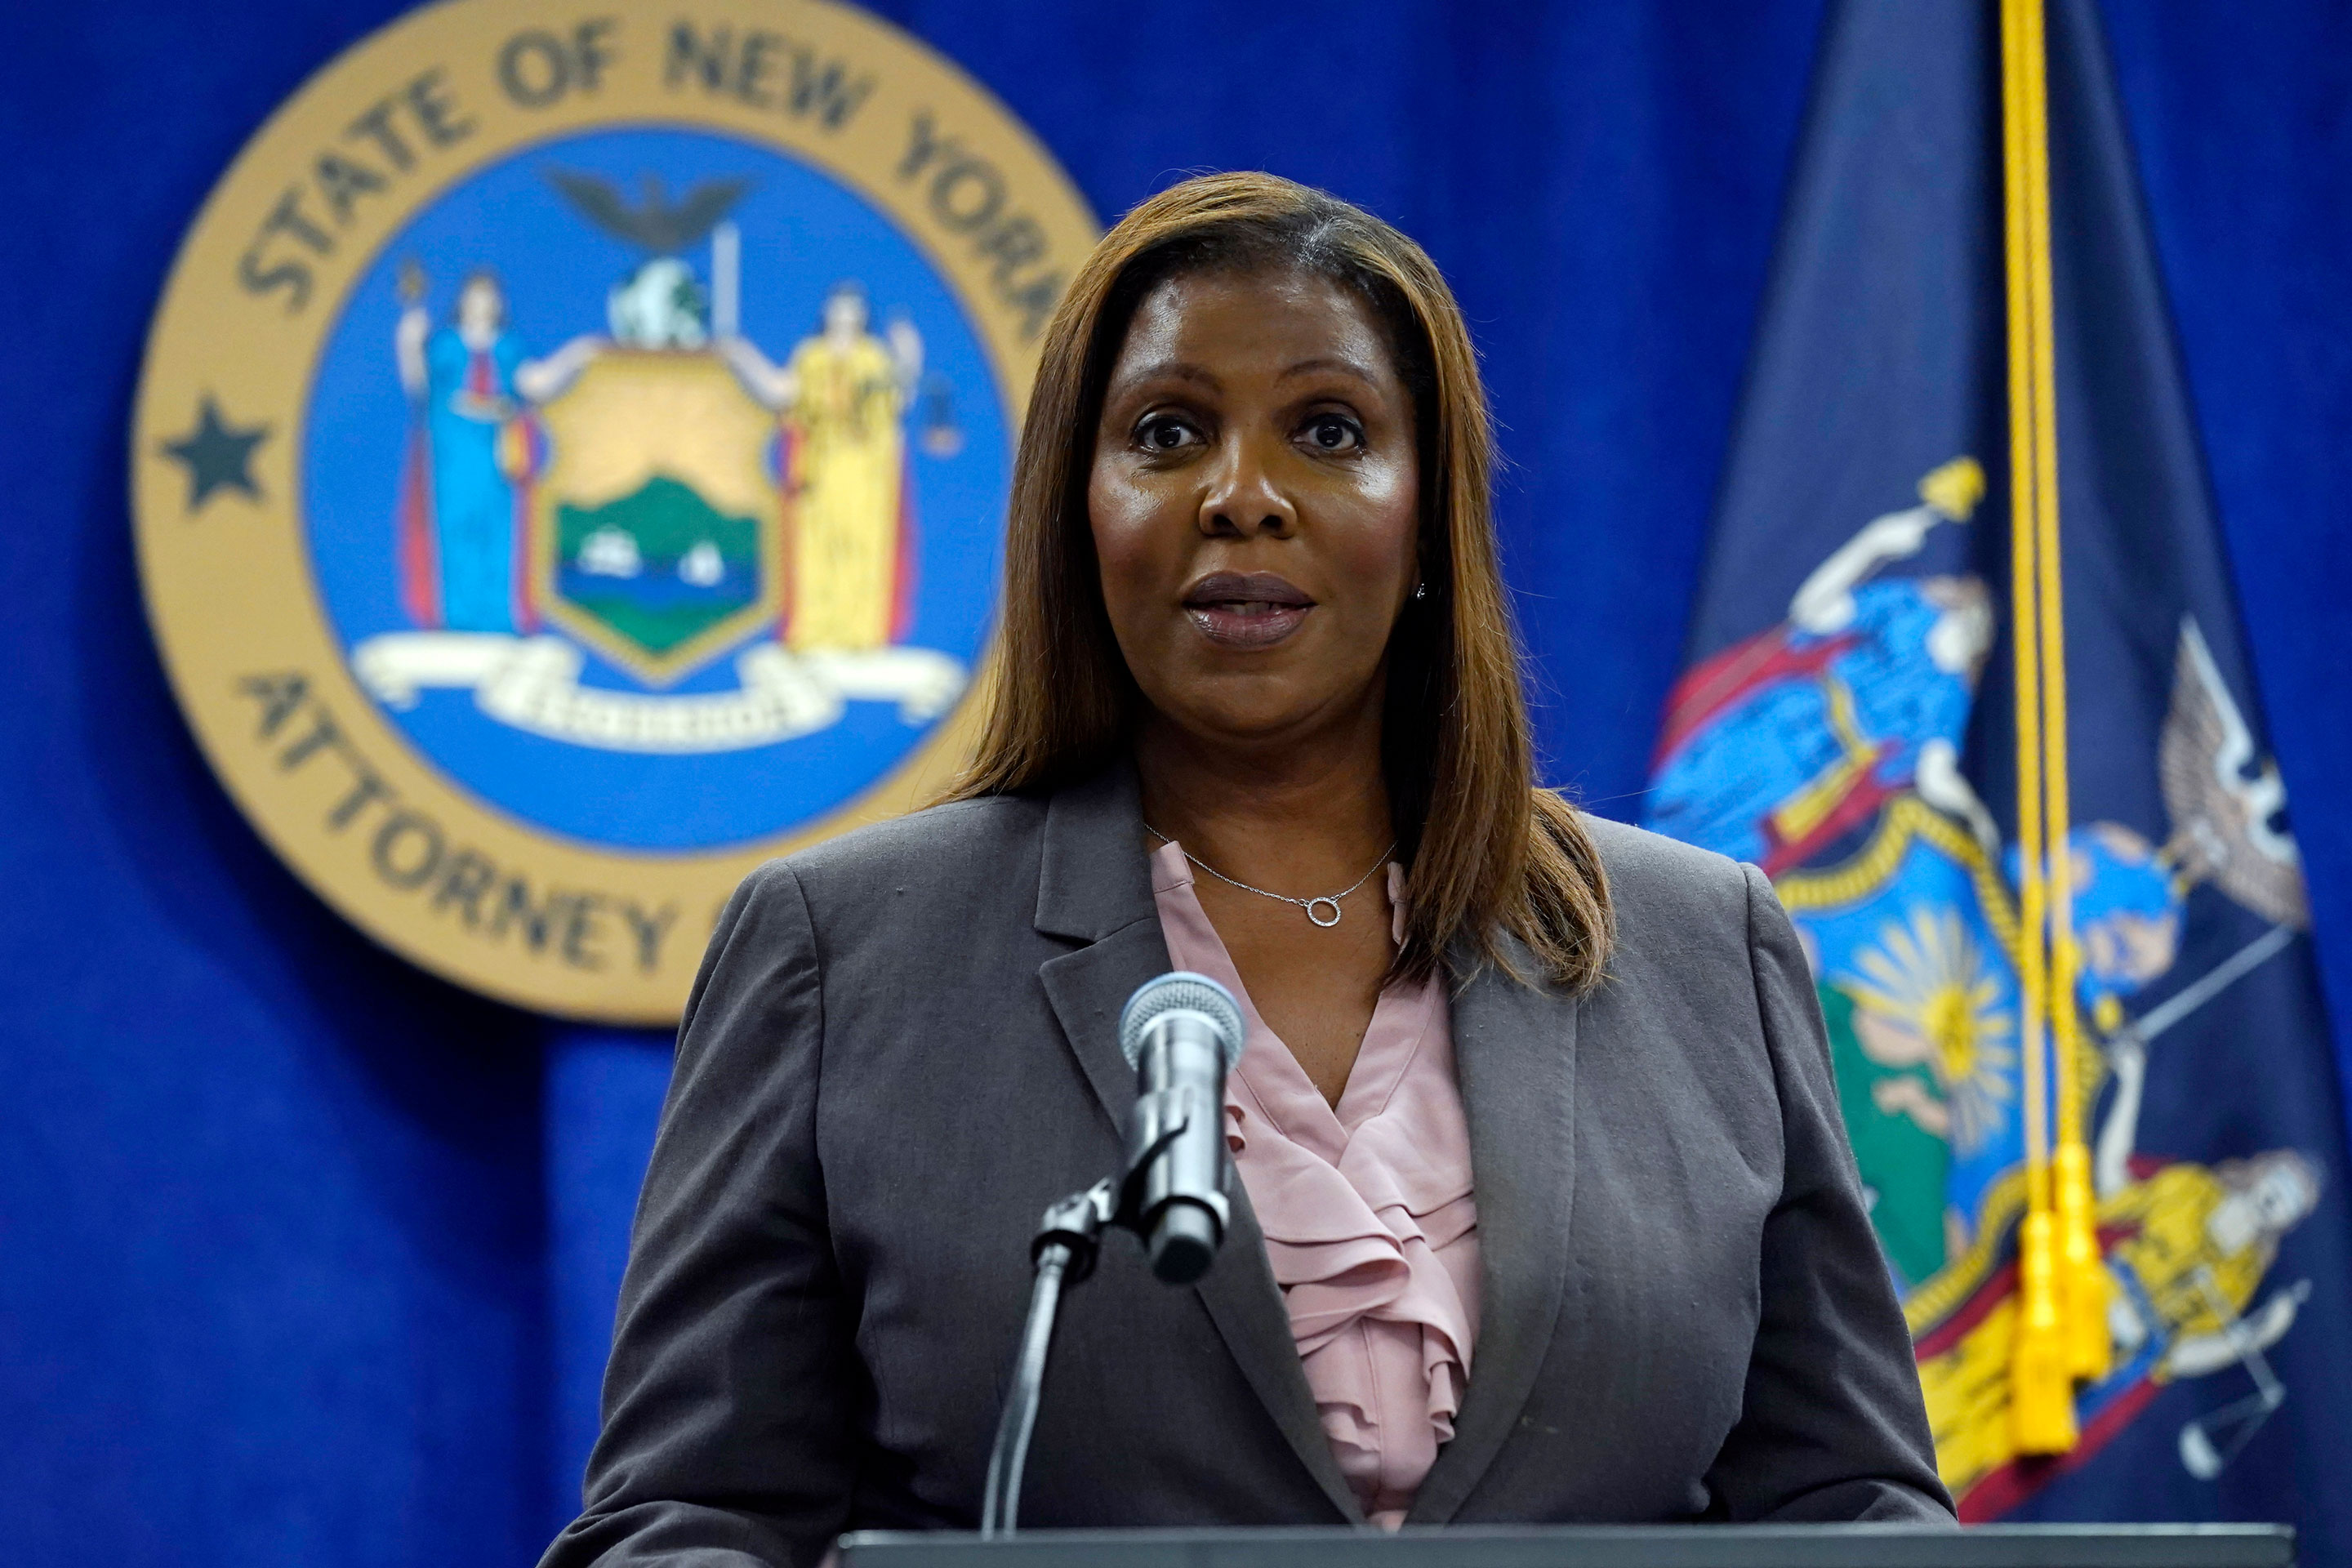 New York Attorney General Letitia James speaks at a news conference on Friday, May 21, in New York.